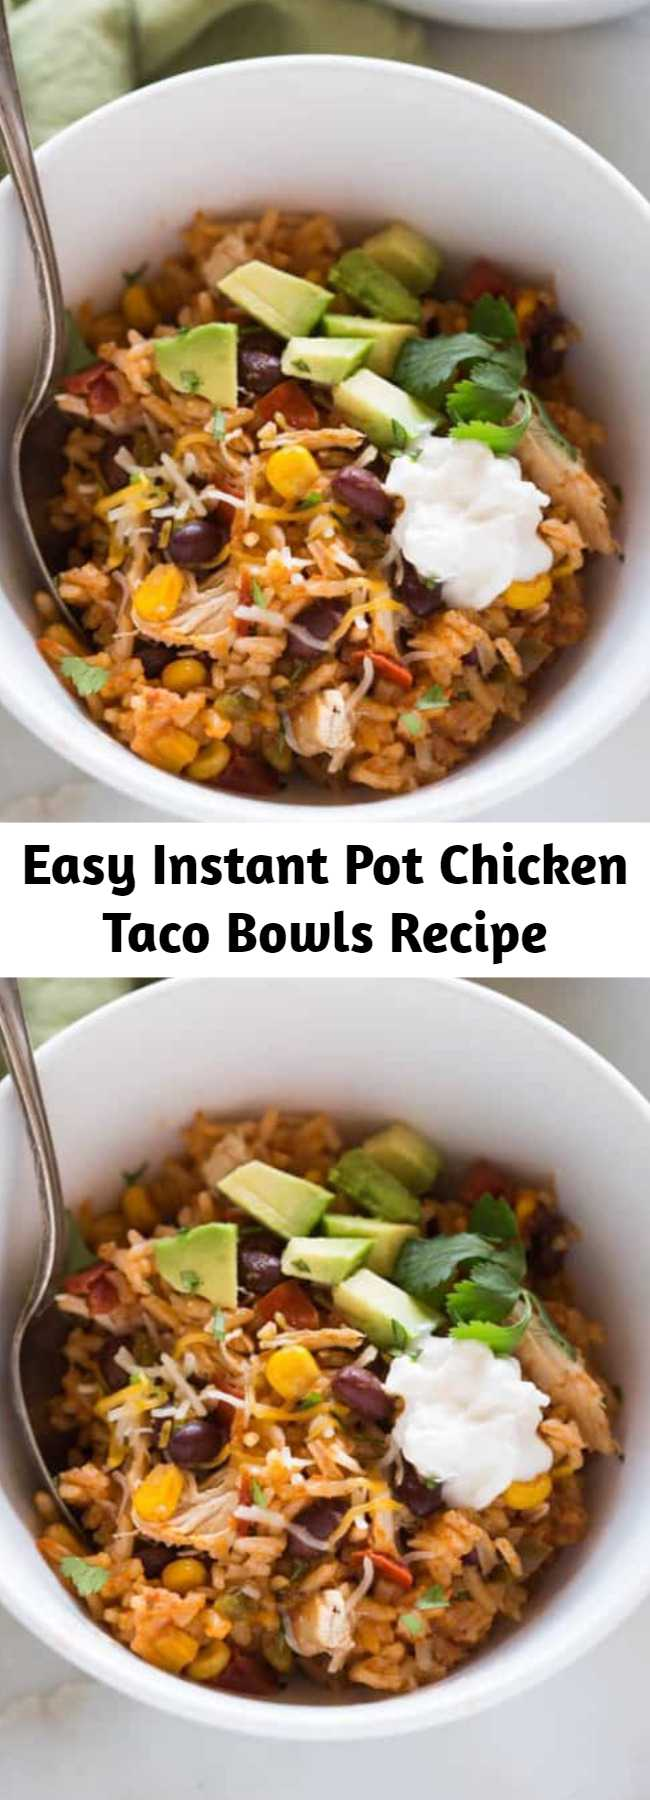 Easy Instant Pot Chicken Taco Bowls Recipe - This all in one dinner has quickly become a family favorite! Instant Pot Chicken Taco Bowls all cooked together in one pot with rice, black beans, corn, salsa chicken and seasonings.